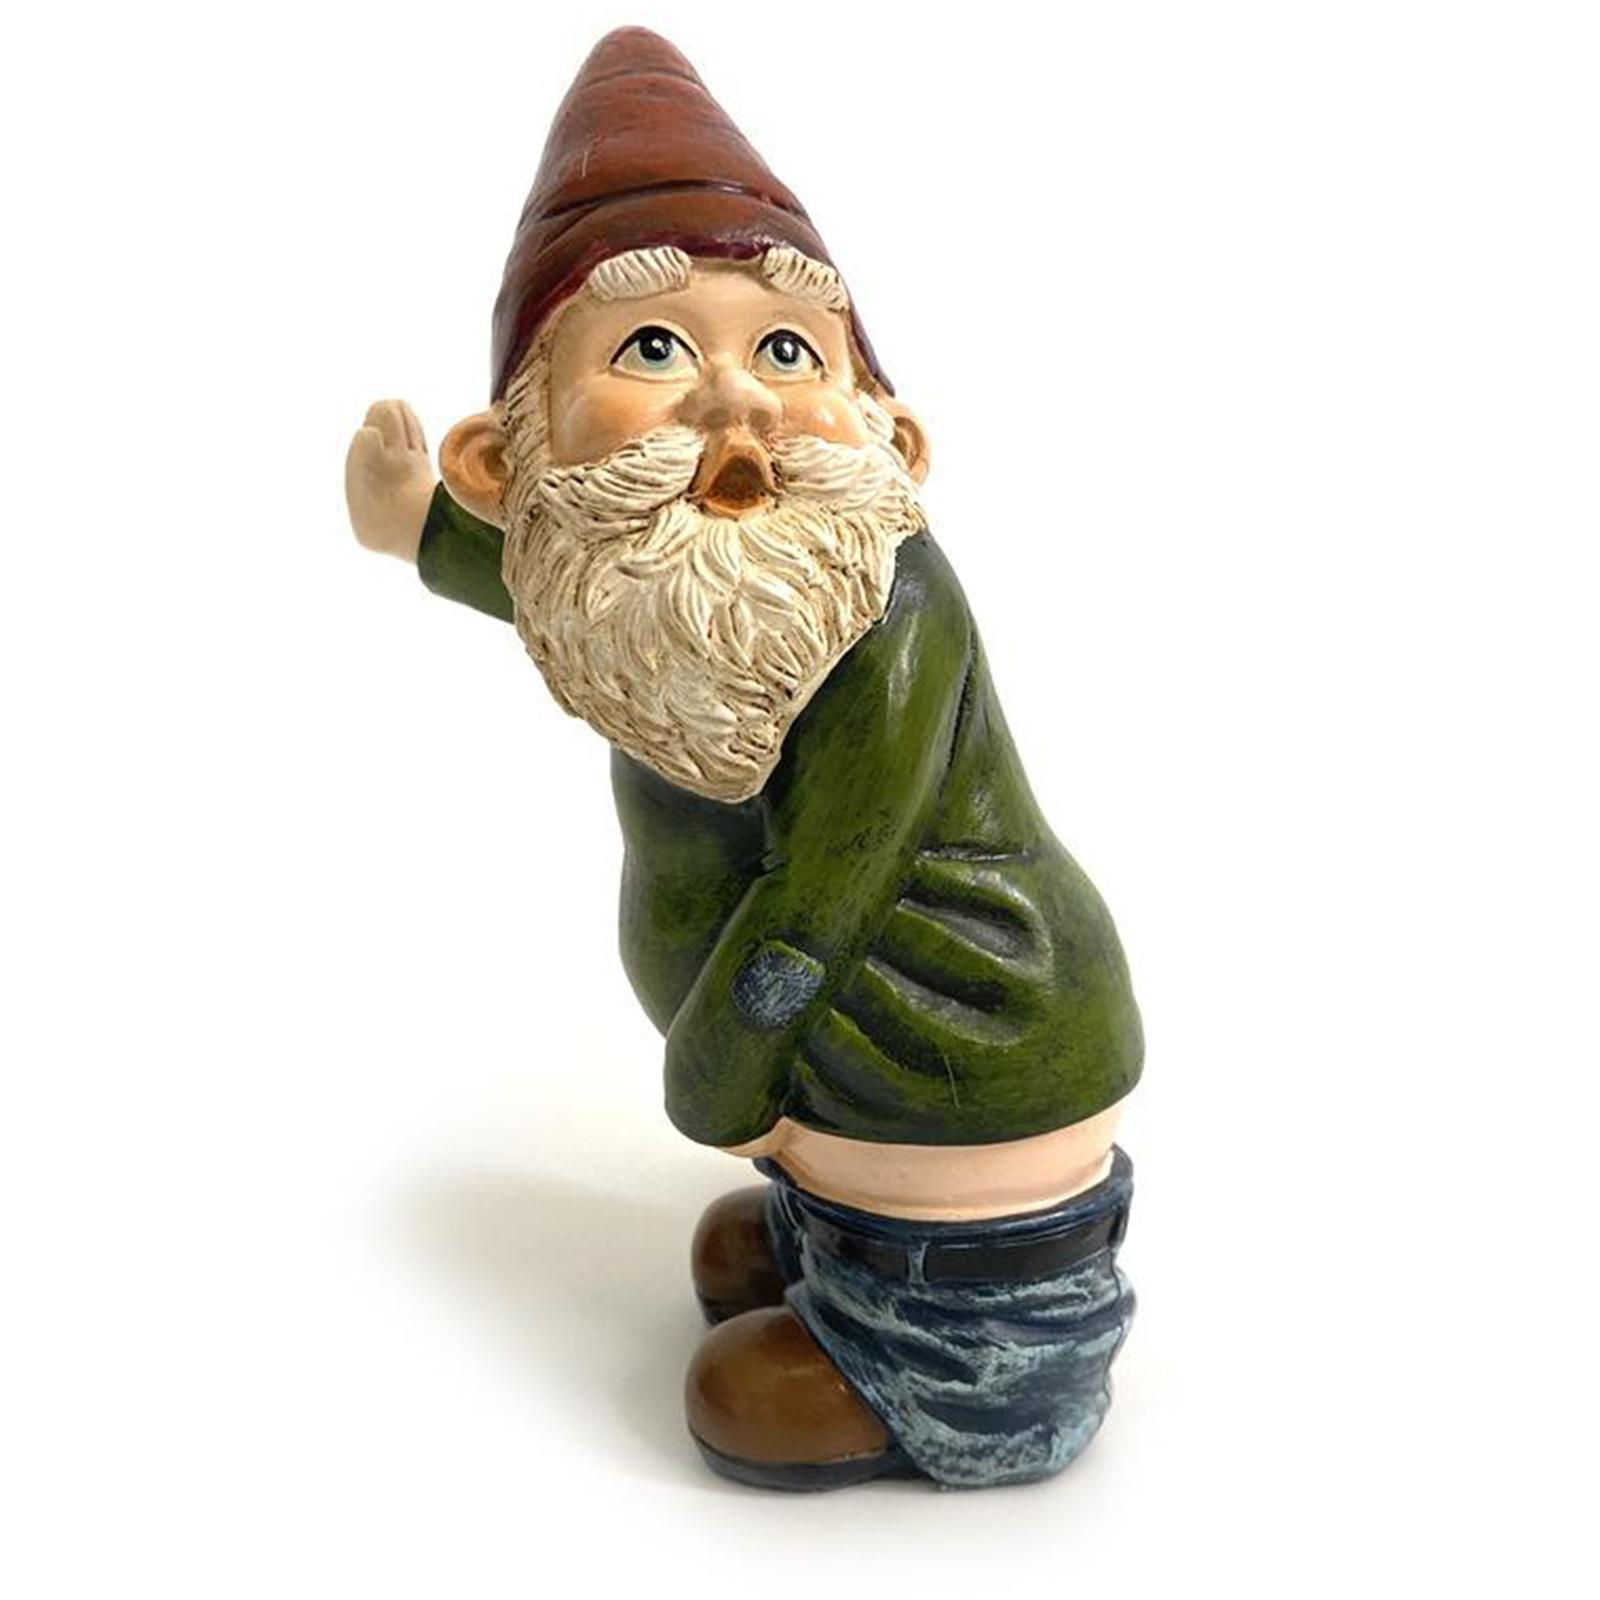 thumbnail 3 - Funny Garden Gnome Statue Figurines Christmas Dress Up DIY for Indoor Outdoor